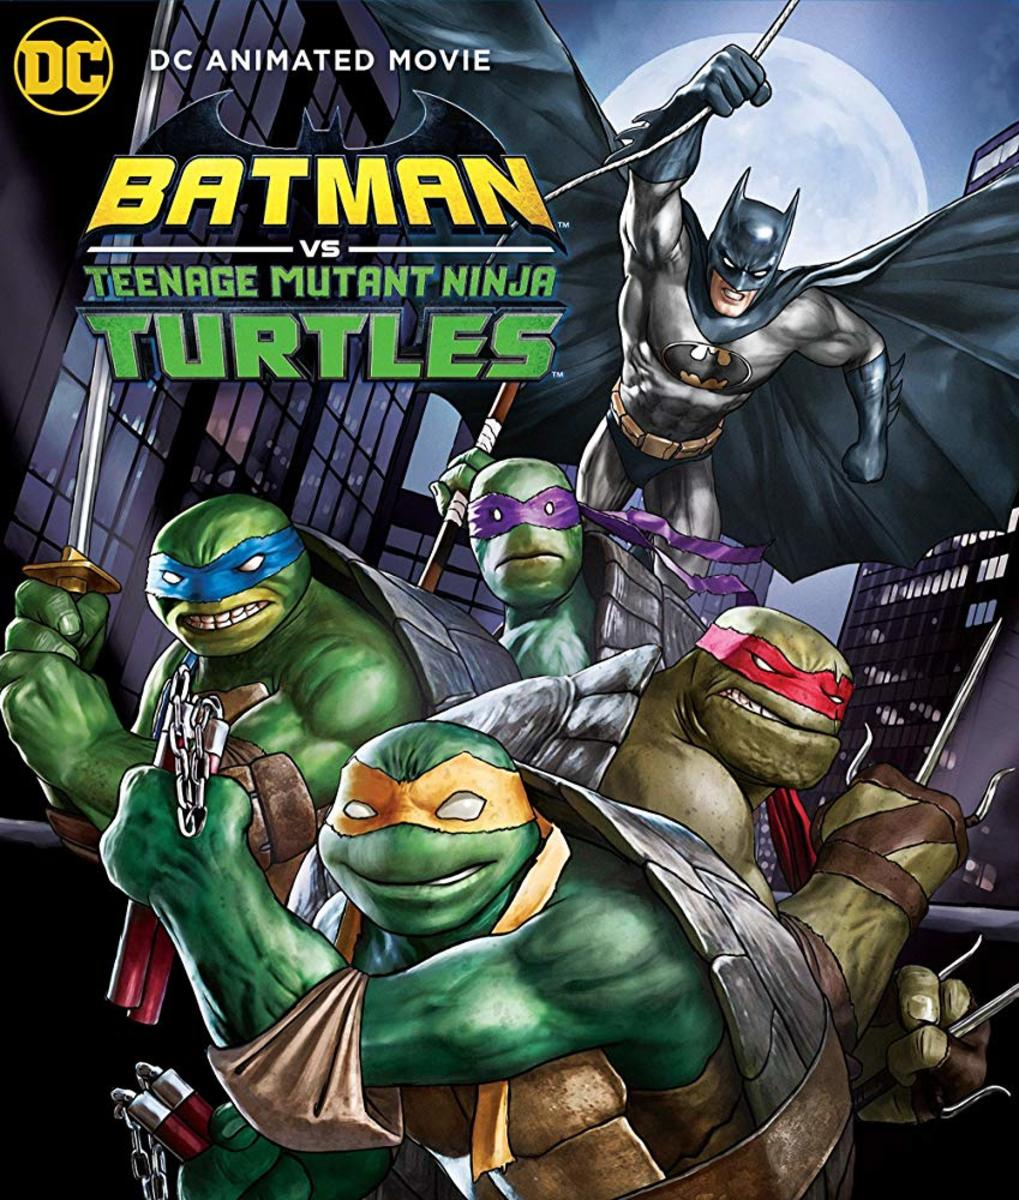 'Batman vs Teenage Mutant Ninja Turtles' (2019) A Tubular Movie Review